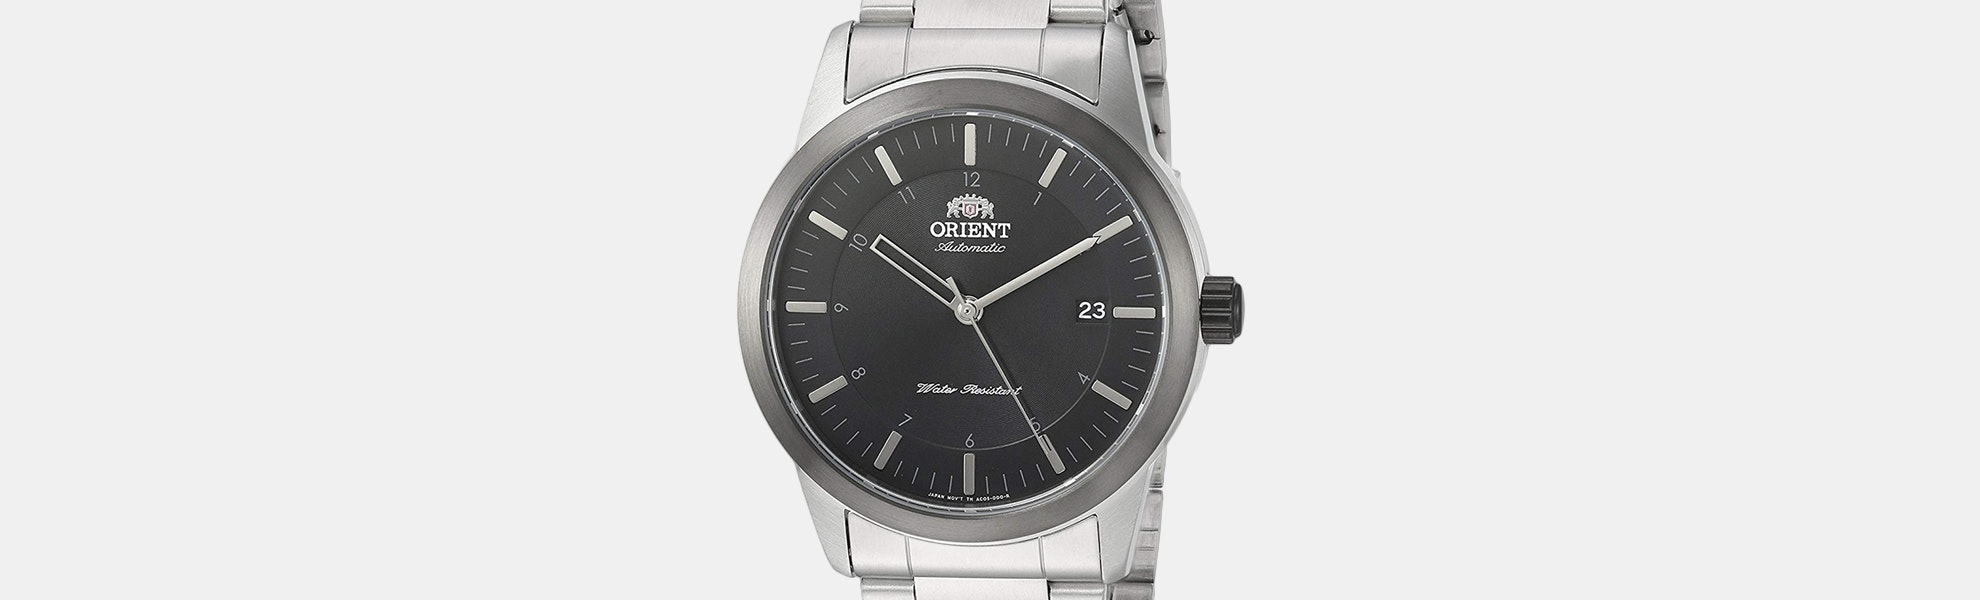 Orient Sentinel Automatic Watch